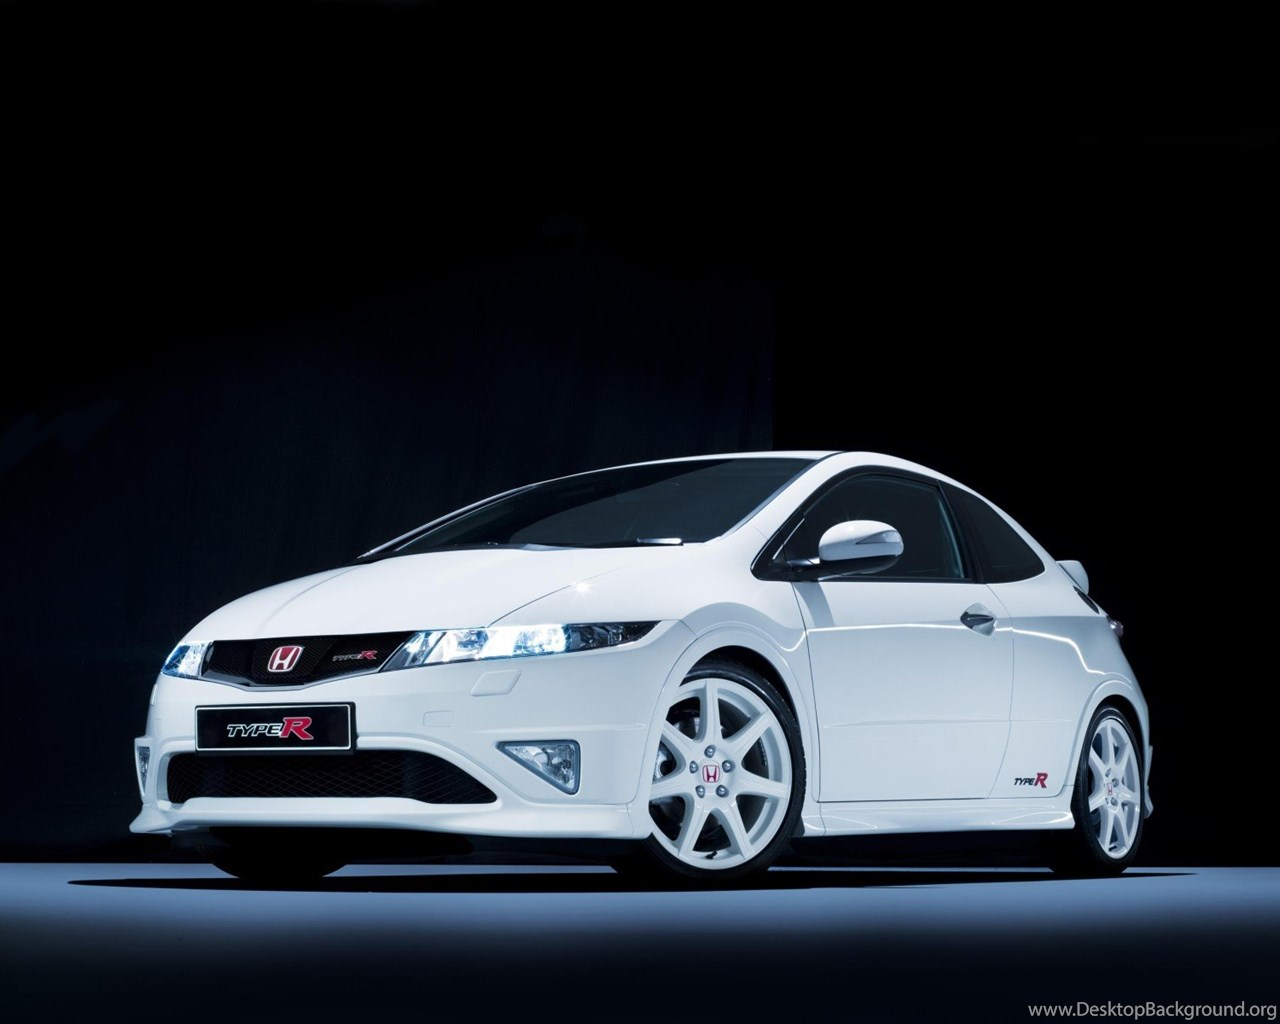 Tag For Honda Civic Type R Wallpapers Spagheto Wheels Desktop